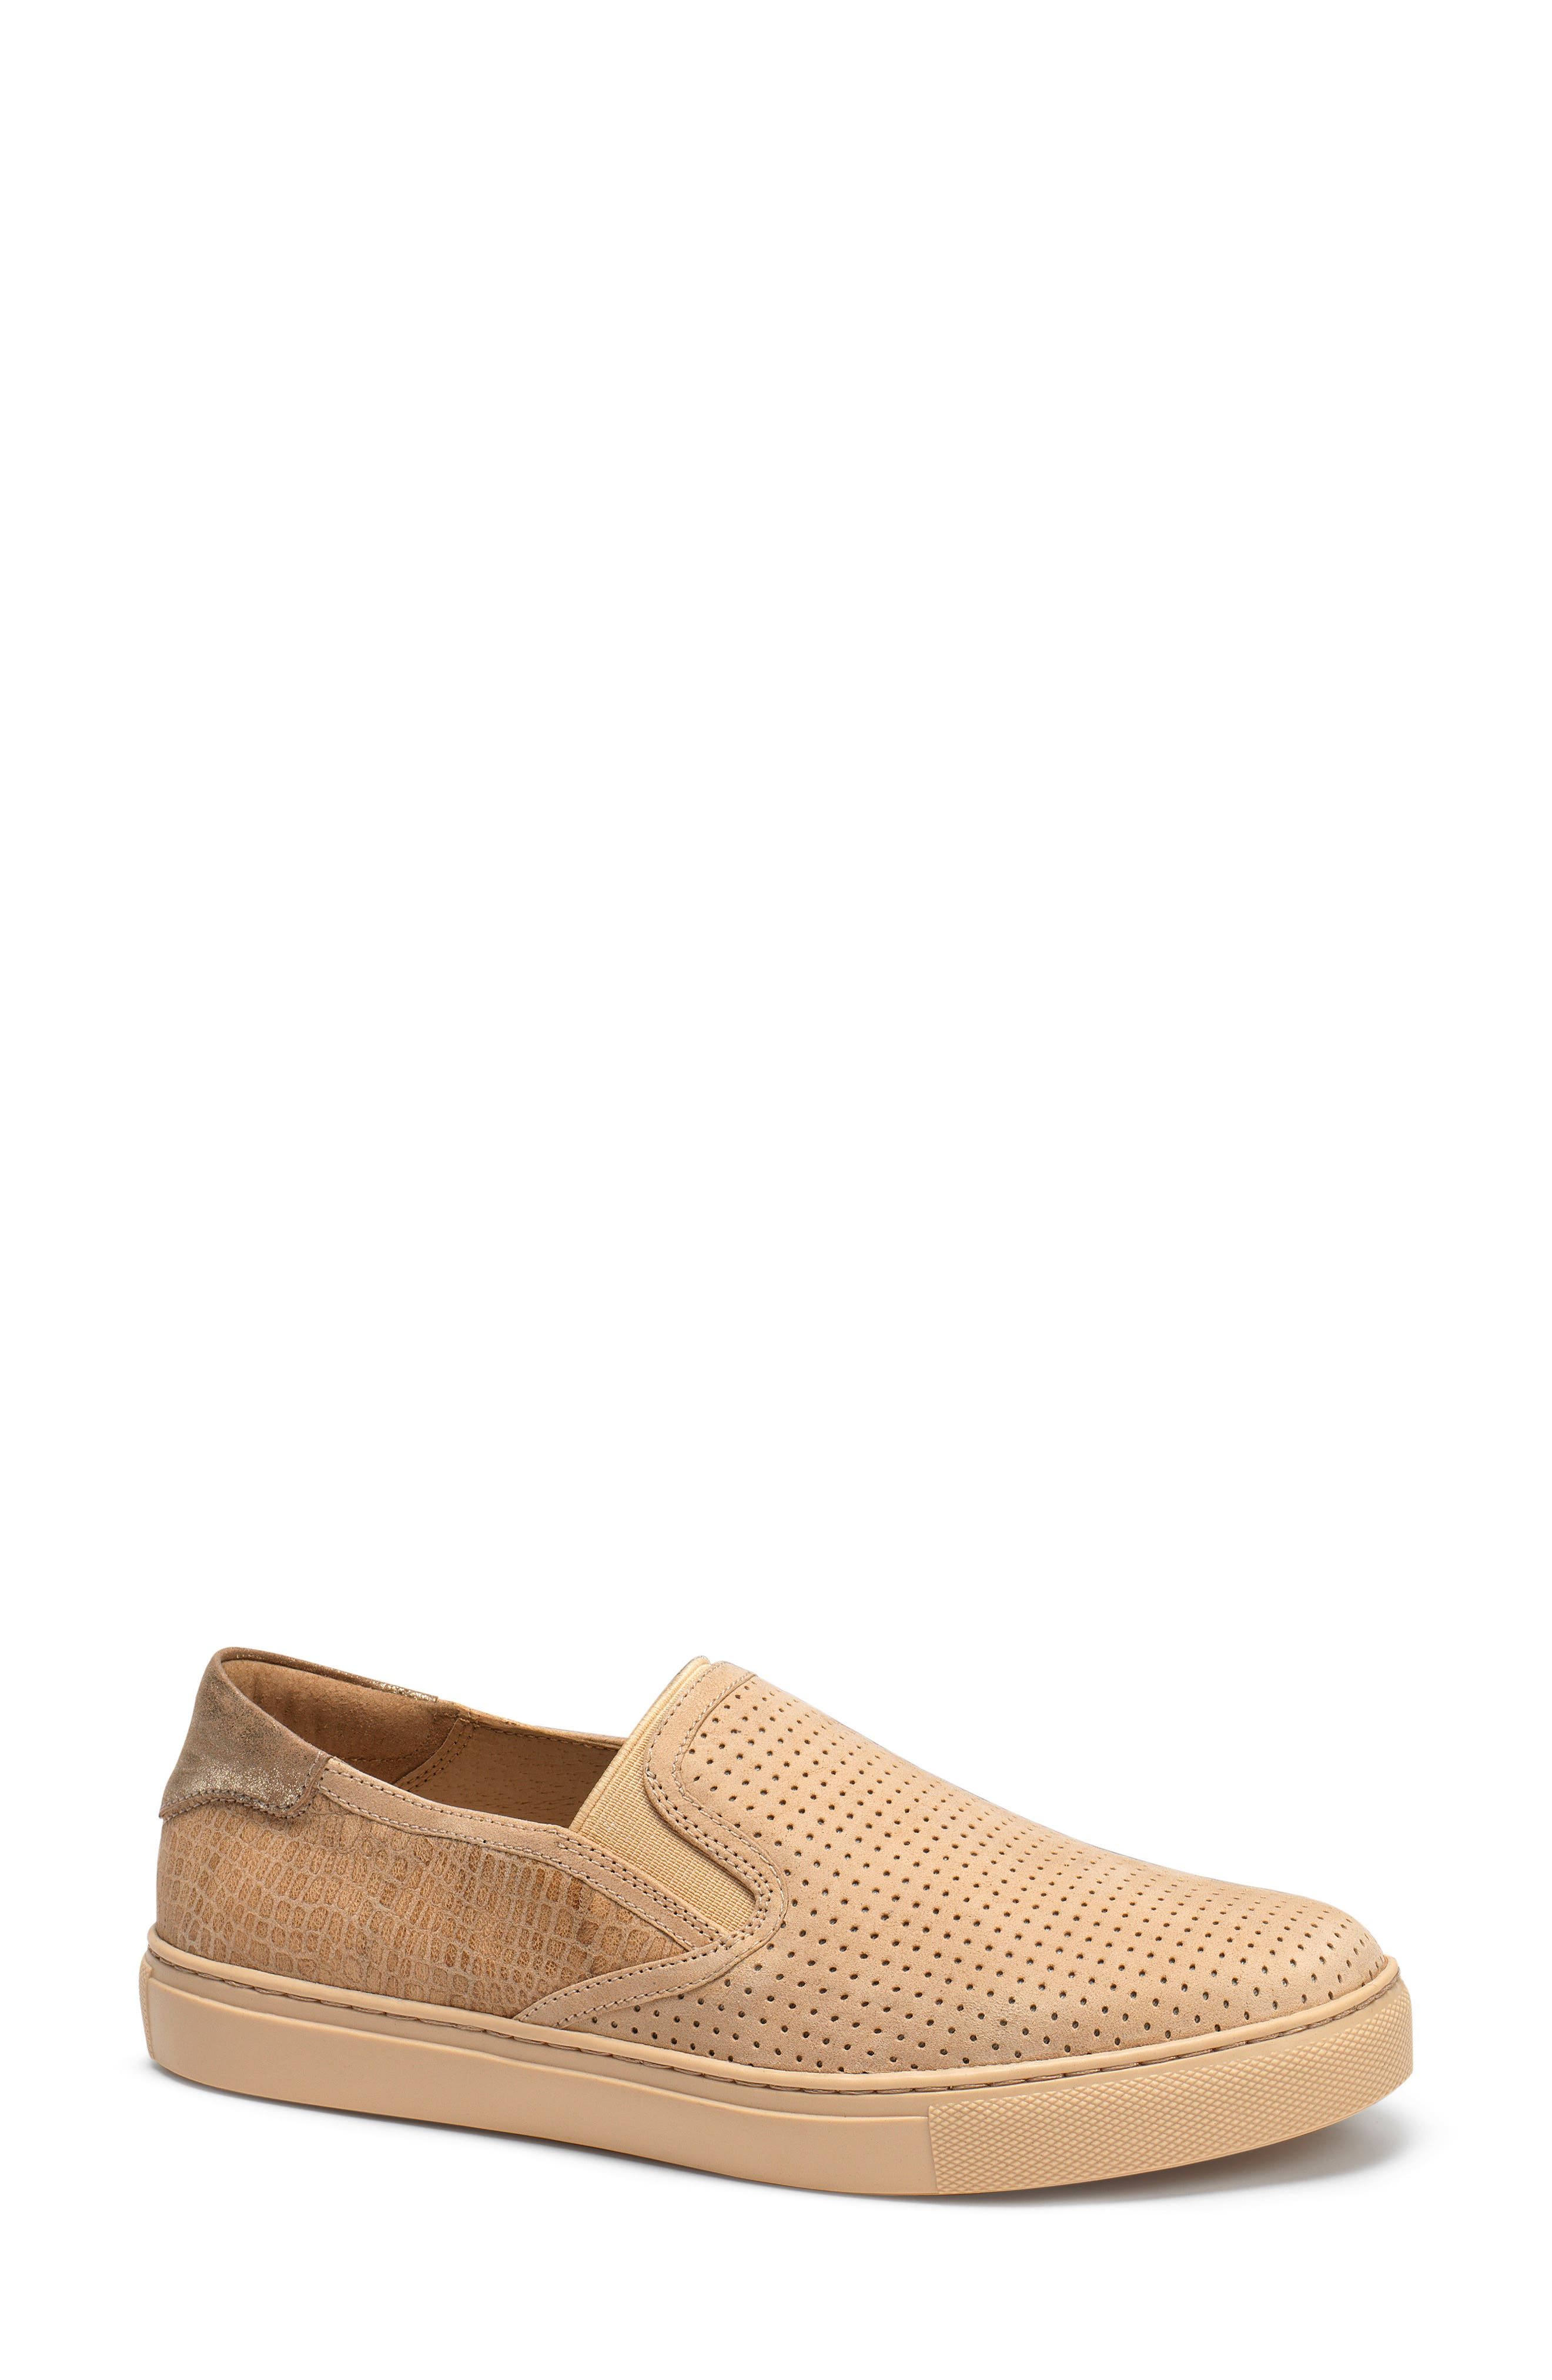 Lillian Water Resistant Slip-On Sneaker,                         Main,                         color, Beige Leather